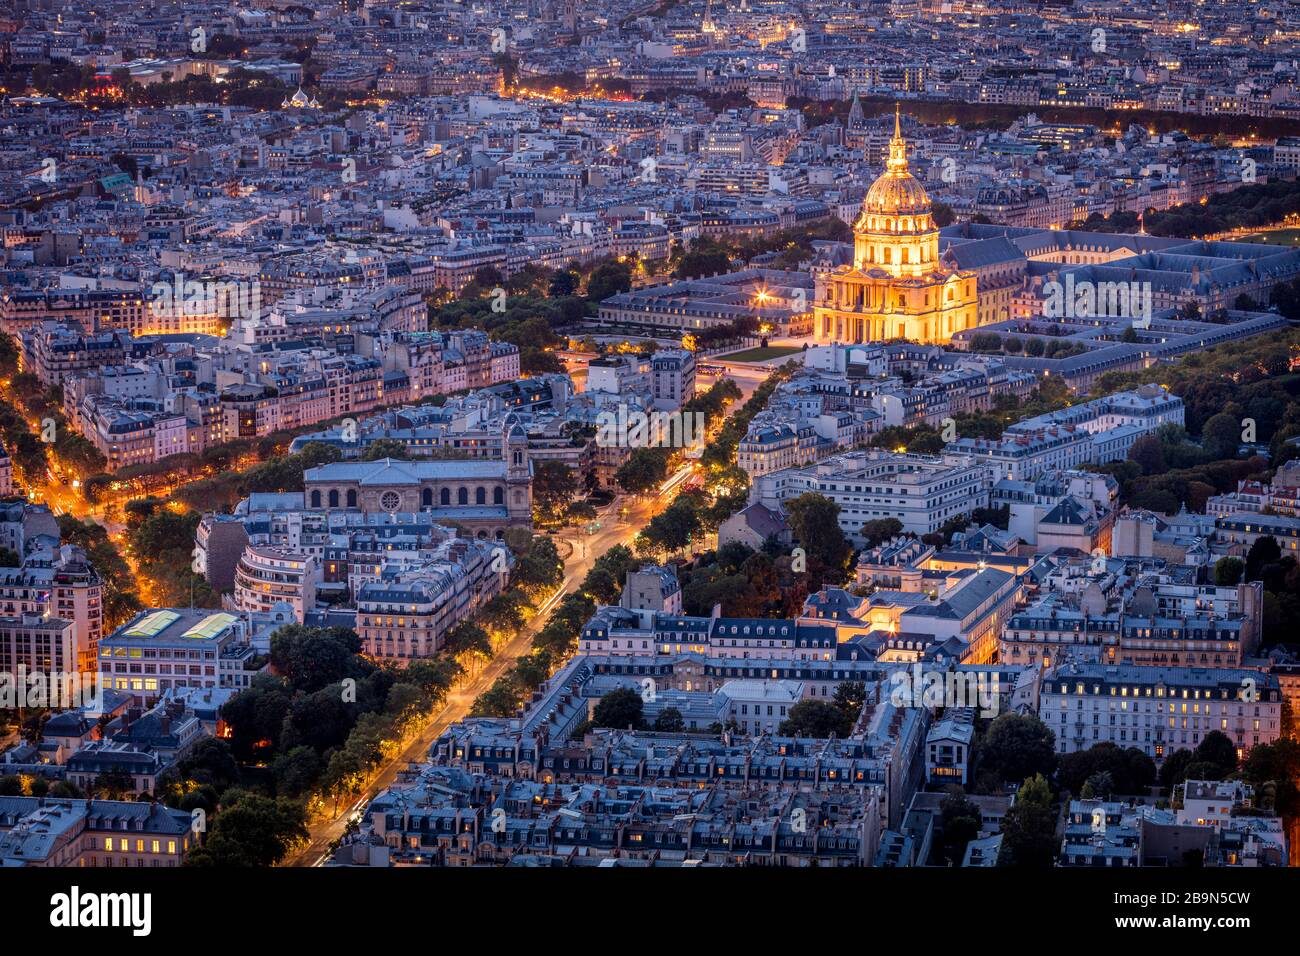 Overhead view of Eglise Saint Louis and city of Paris, France Stock Photo